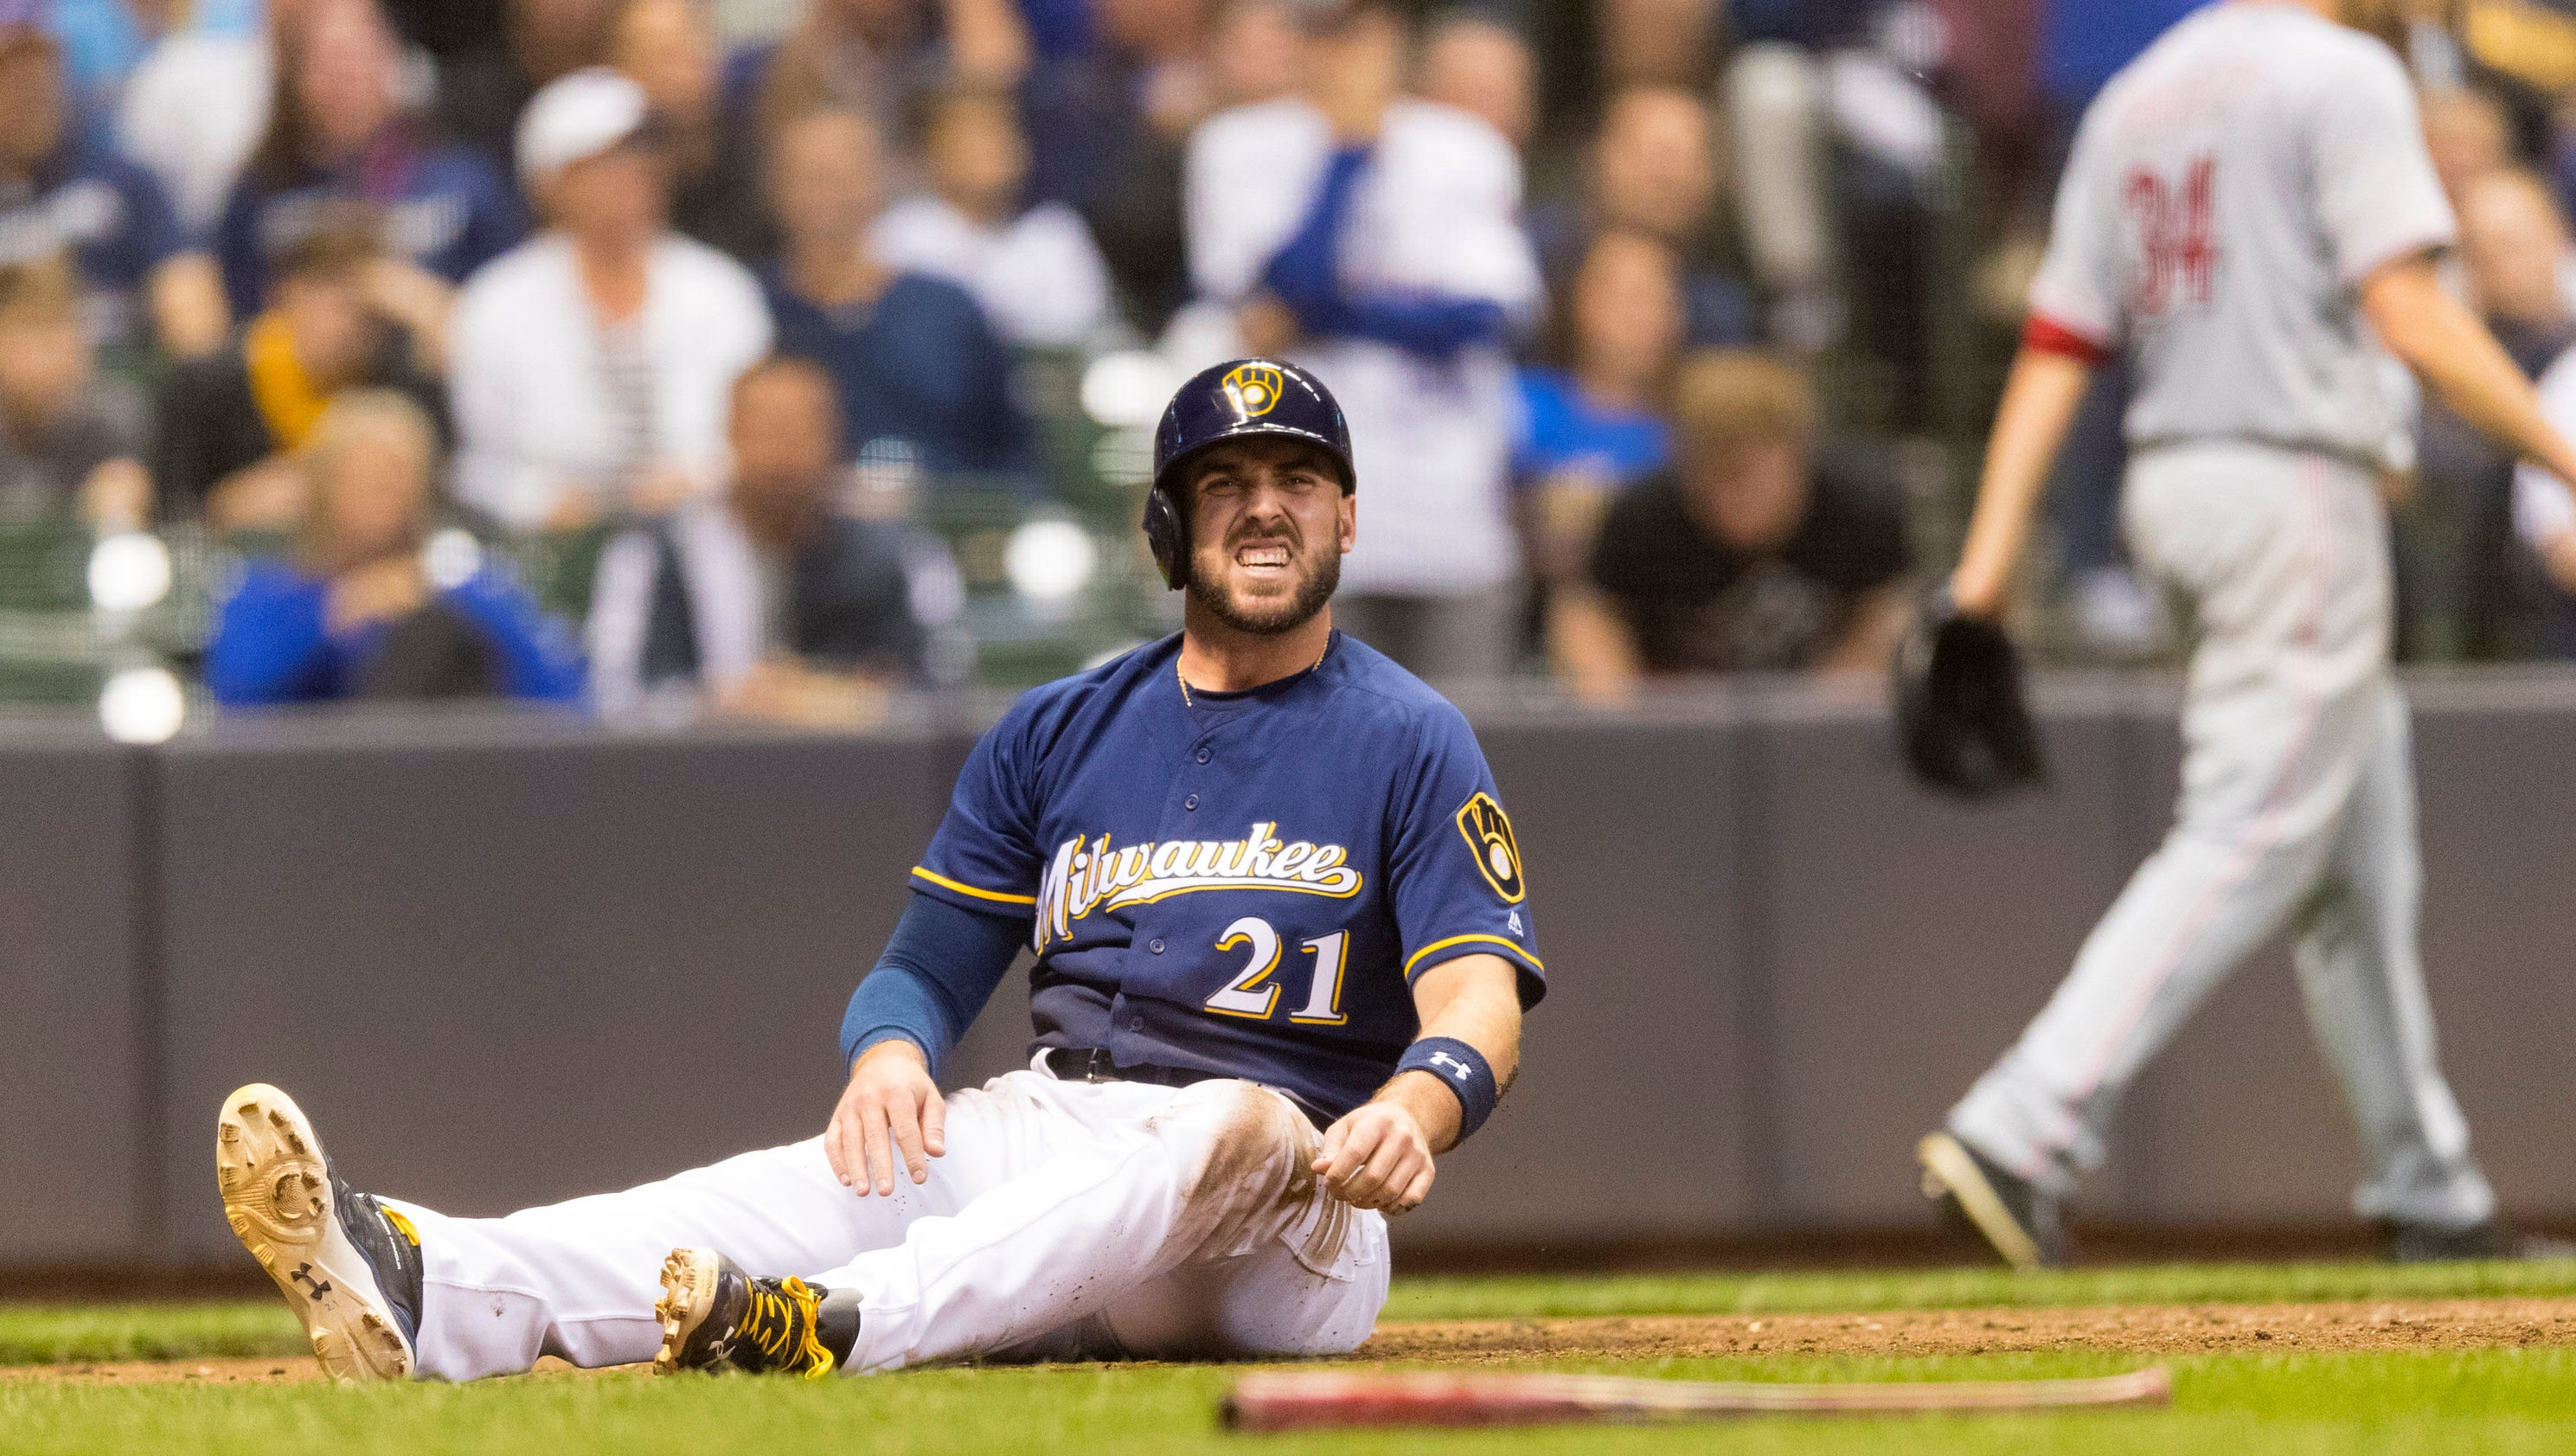 636421470829689485-brewers28p1